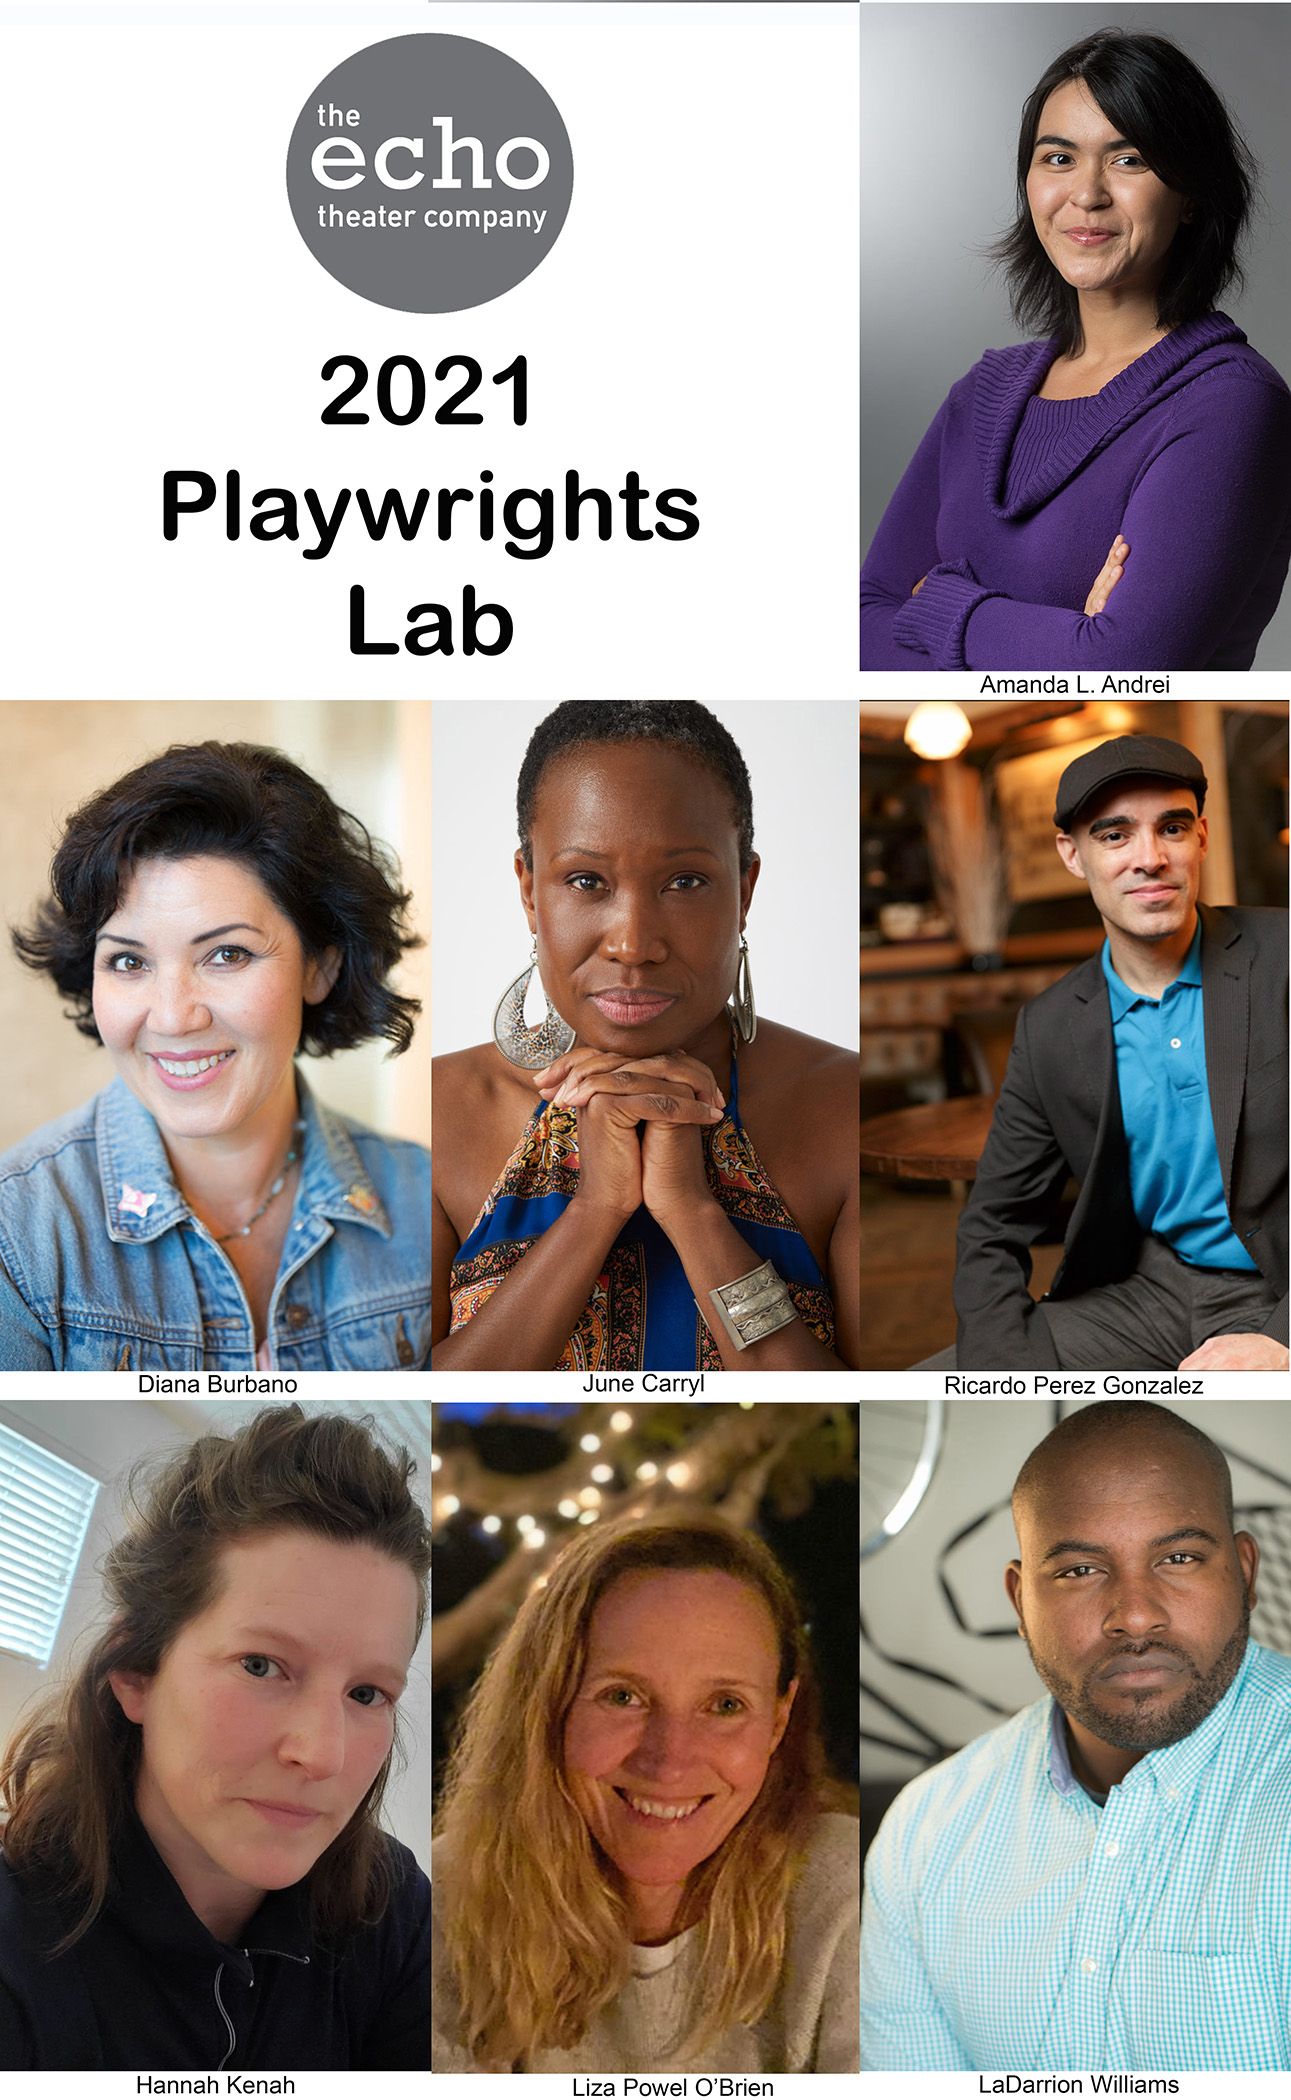 Seven Writers Selected For Echo Theater Company's 2021 Playwrights Lab